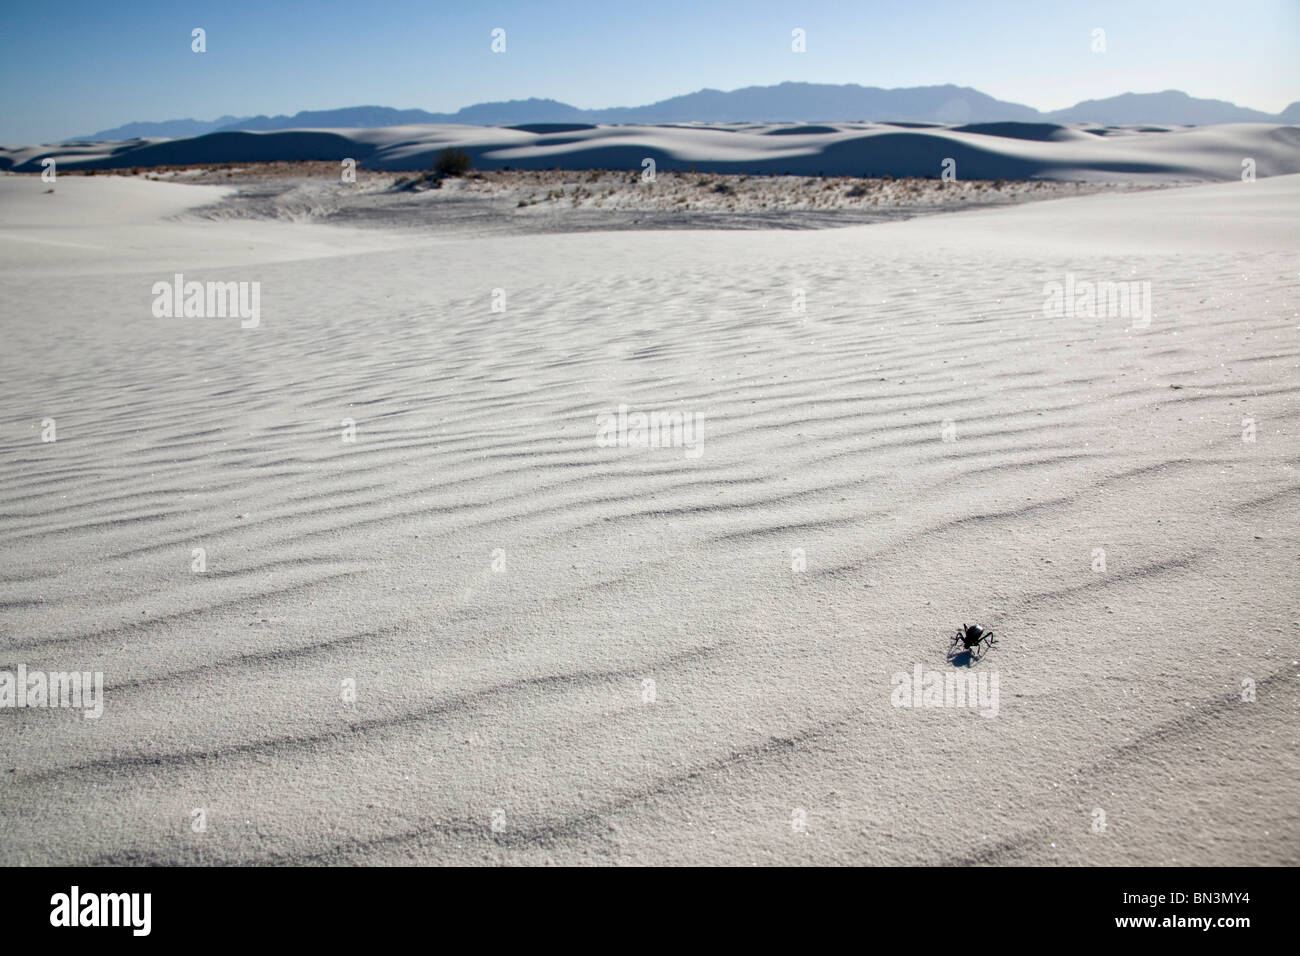 Beetle in sand, White Sands National Monument, New Mexico, USA - Stock Image